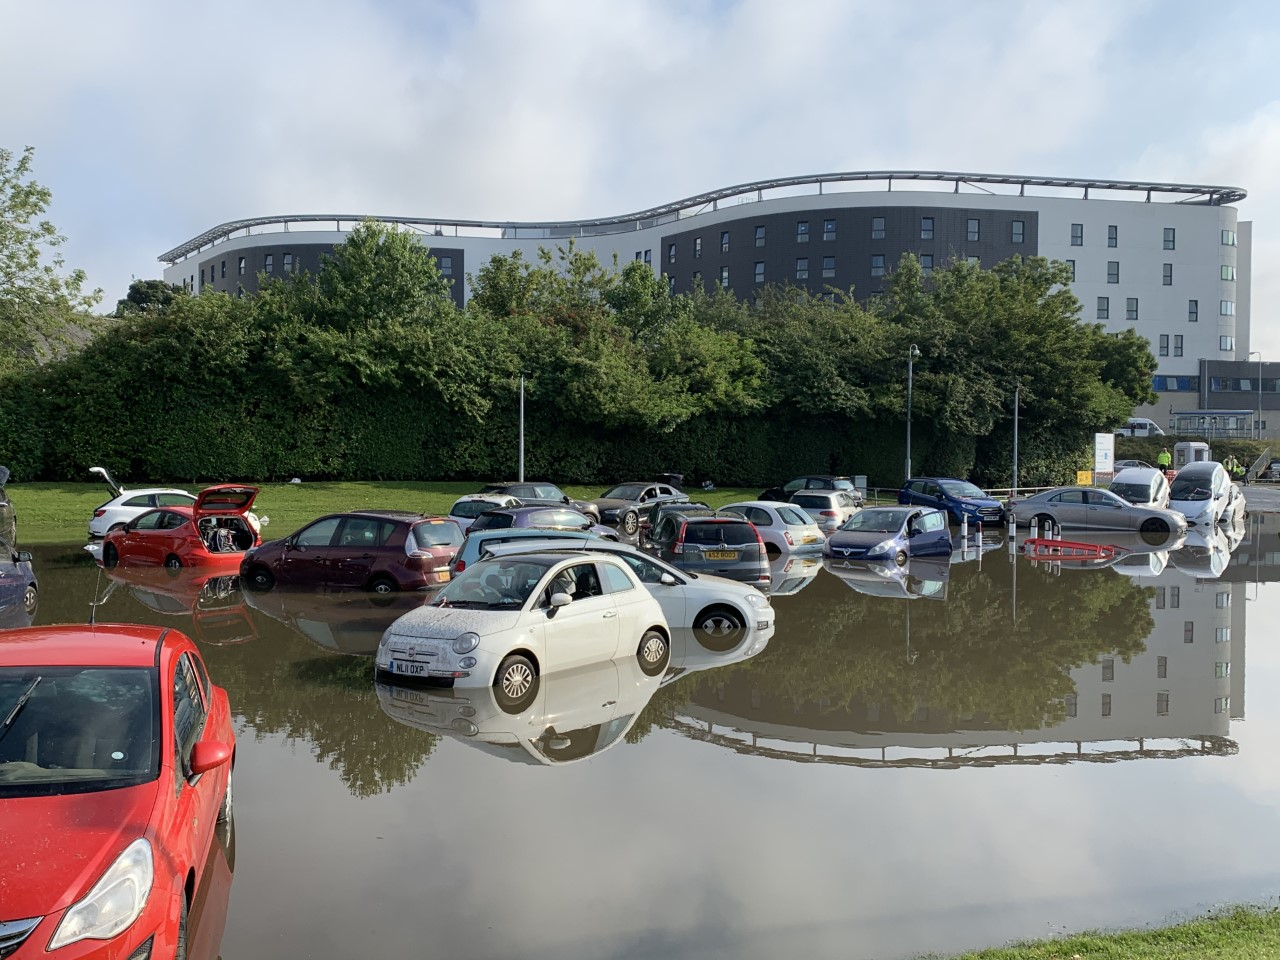 cars partially submerged in floodwater